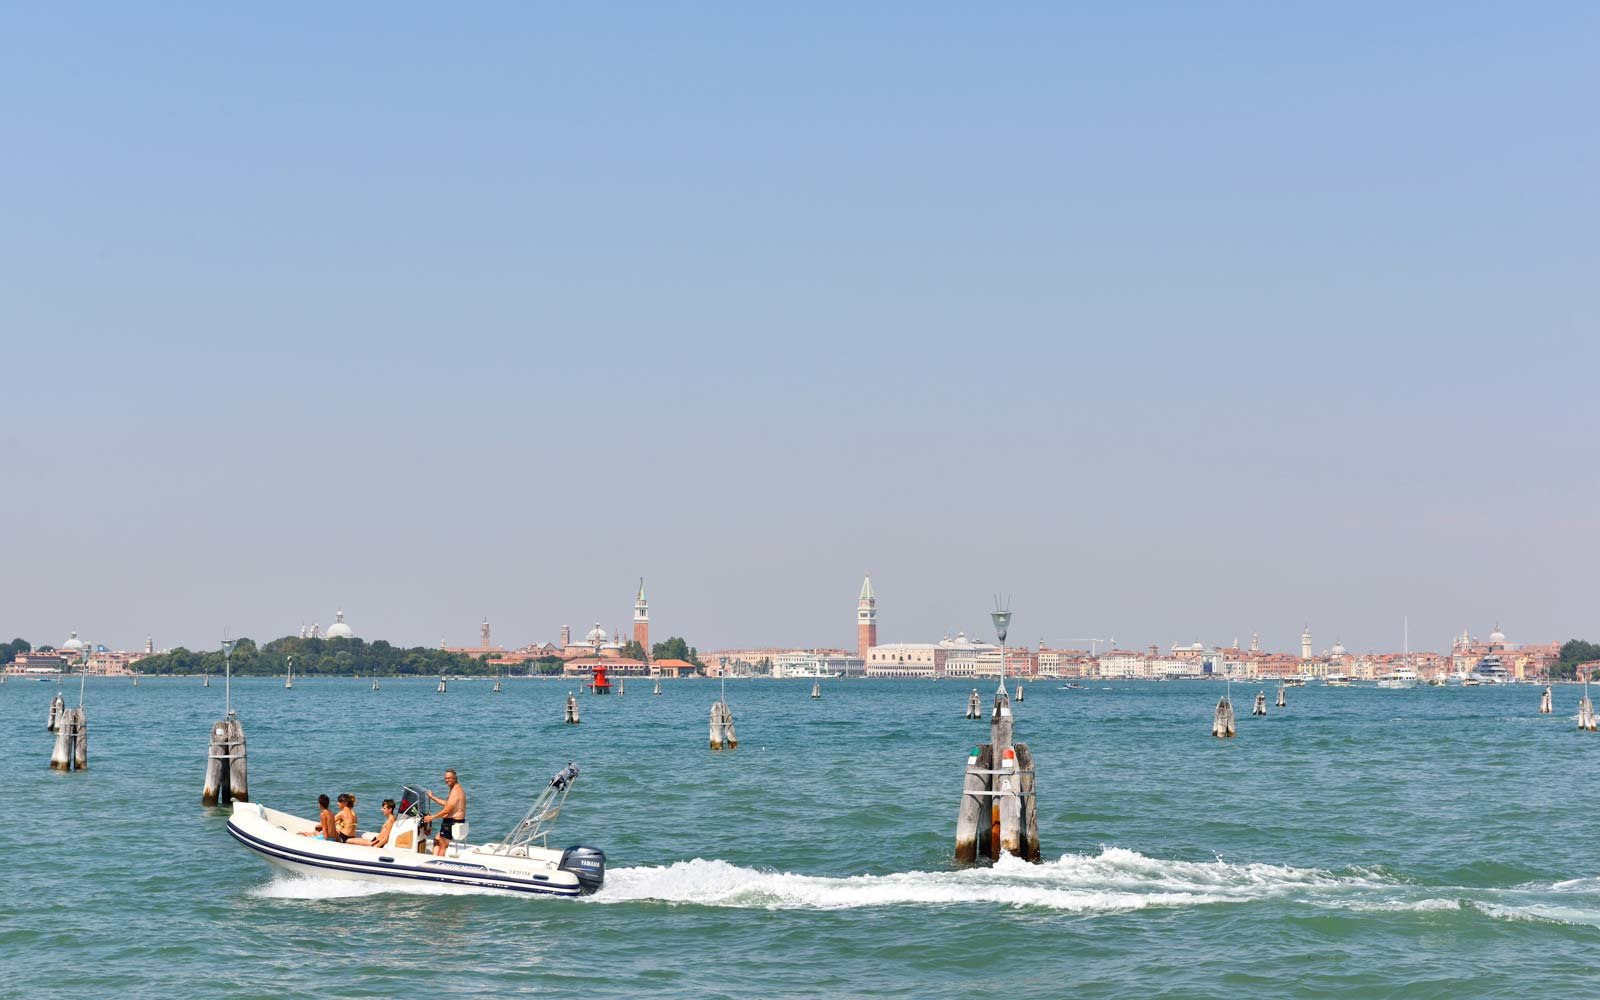 View of Venice from Lido Island